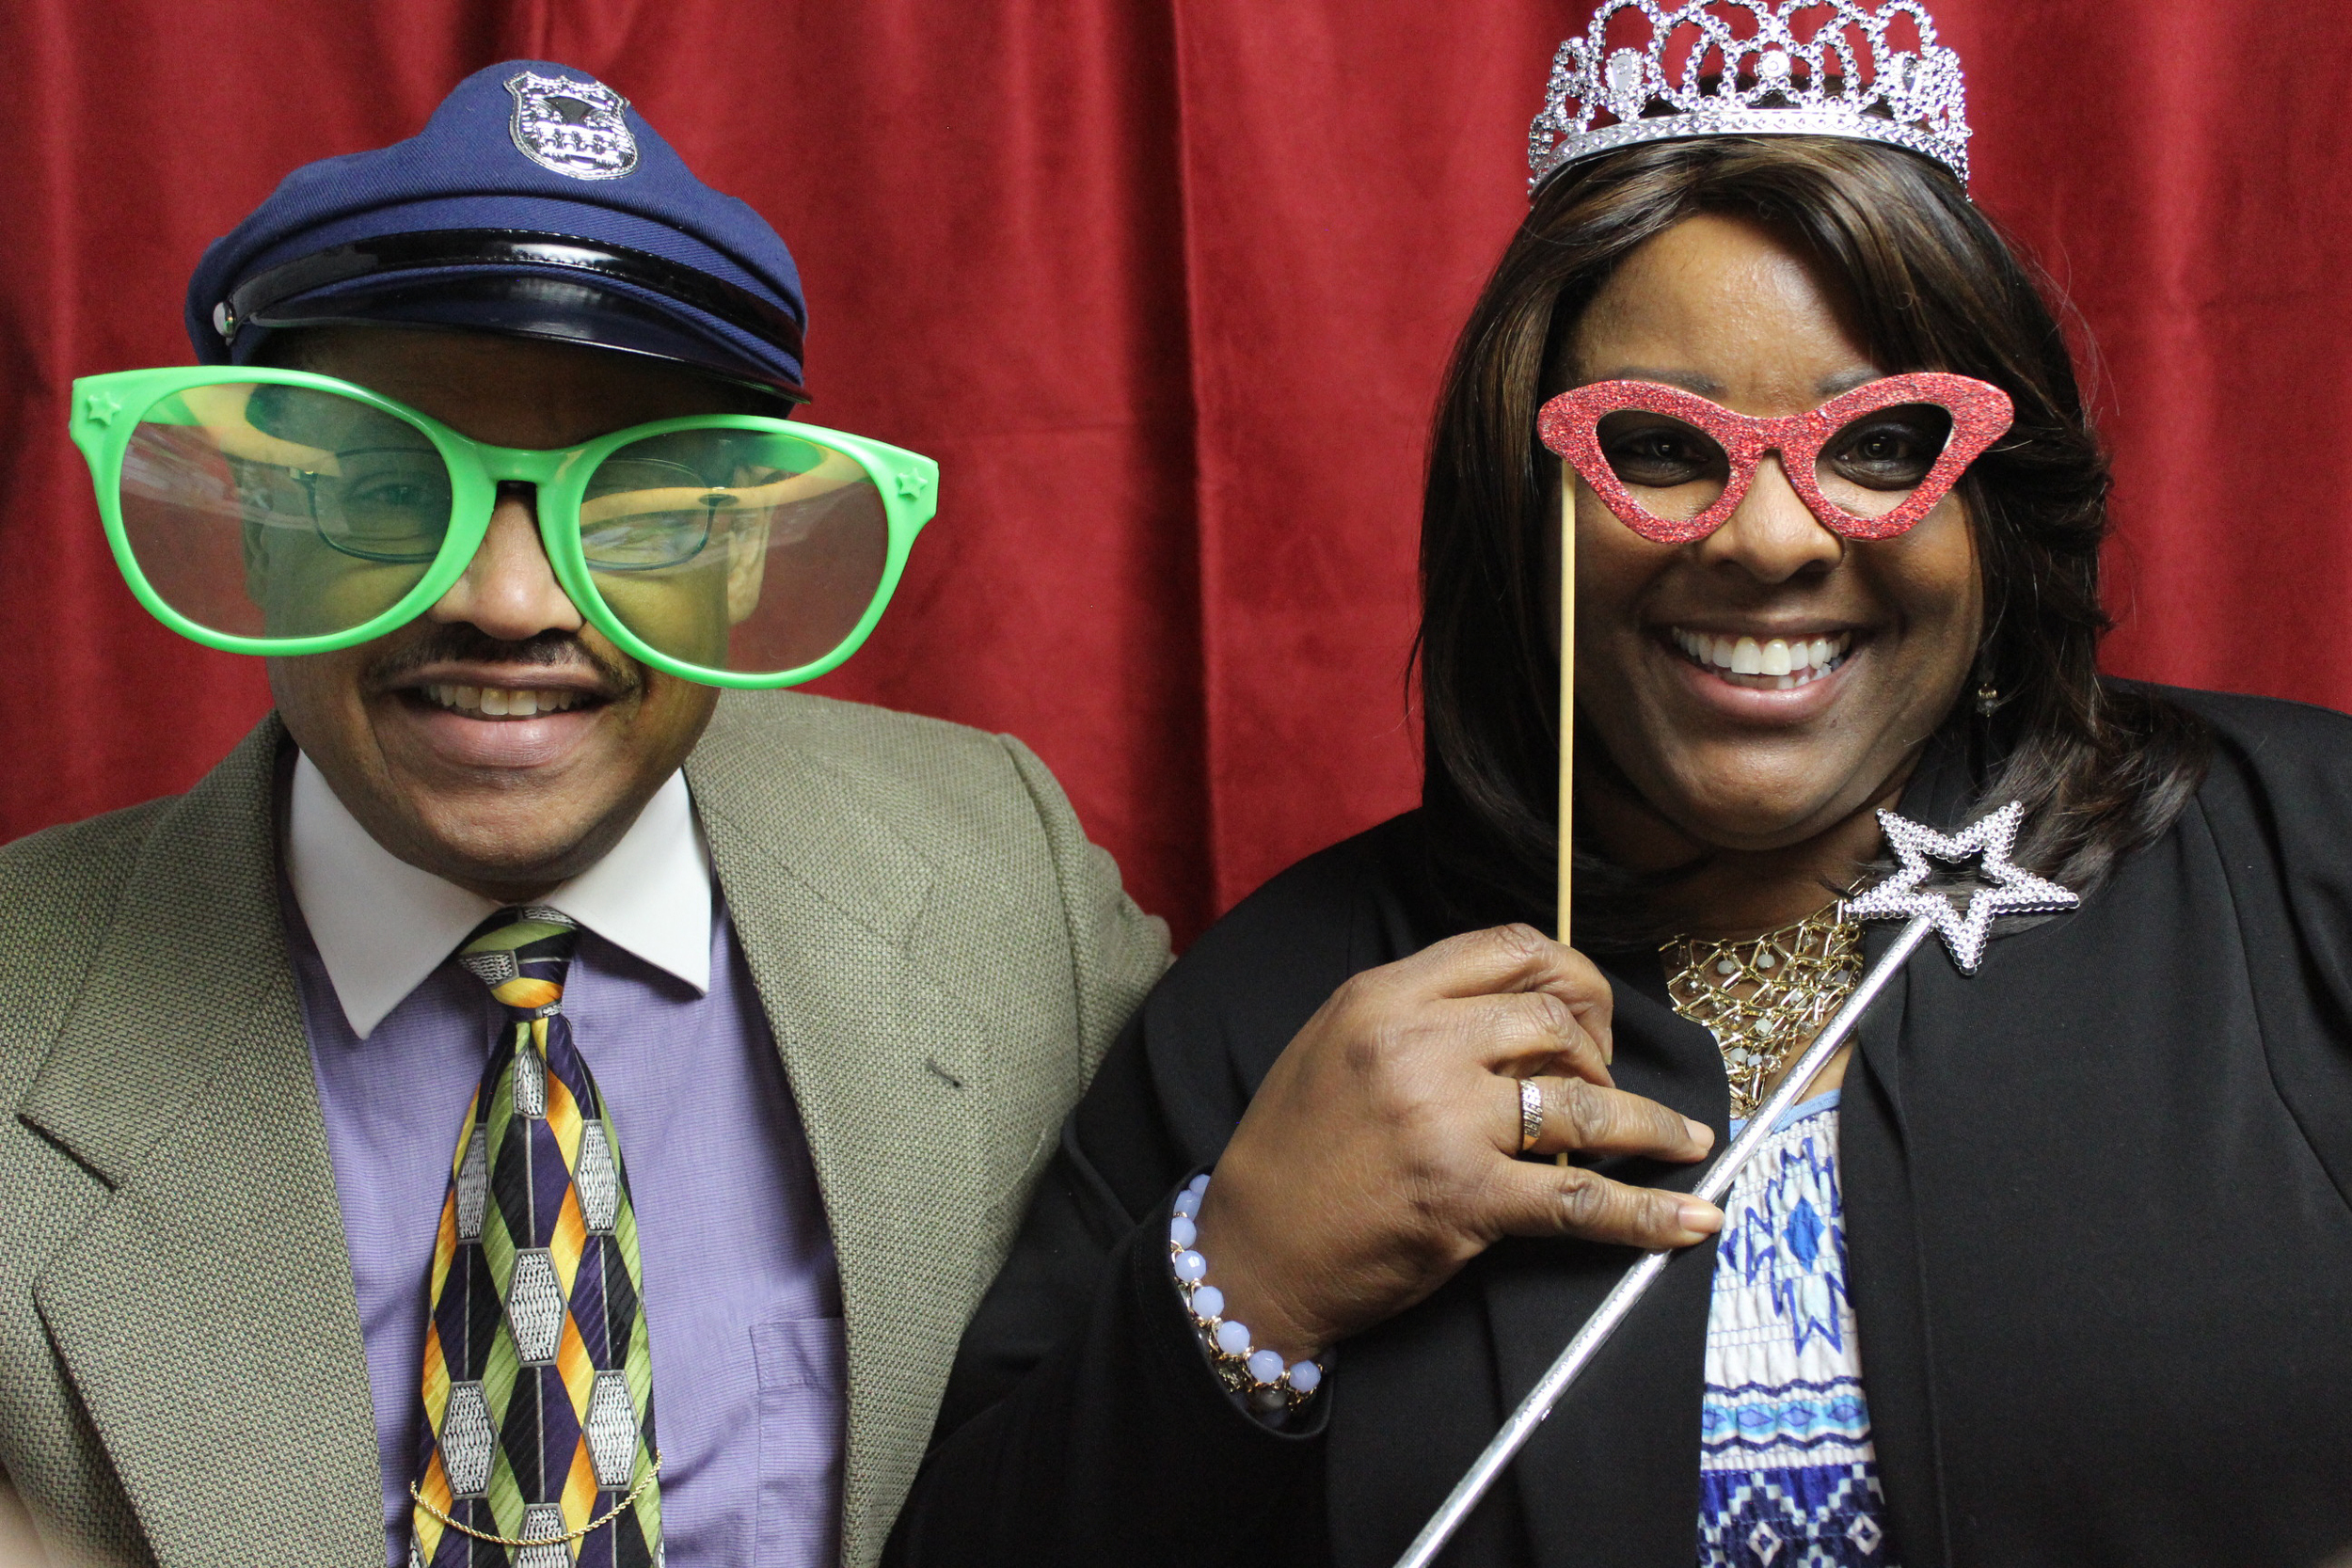 Ann-Marie & Maurice Photo Booth Wedding (222).jpg